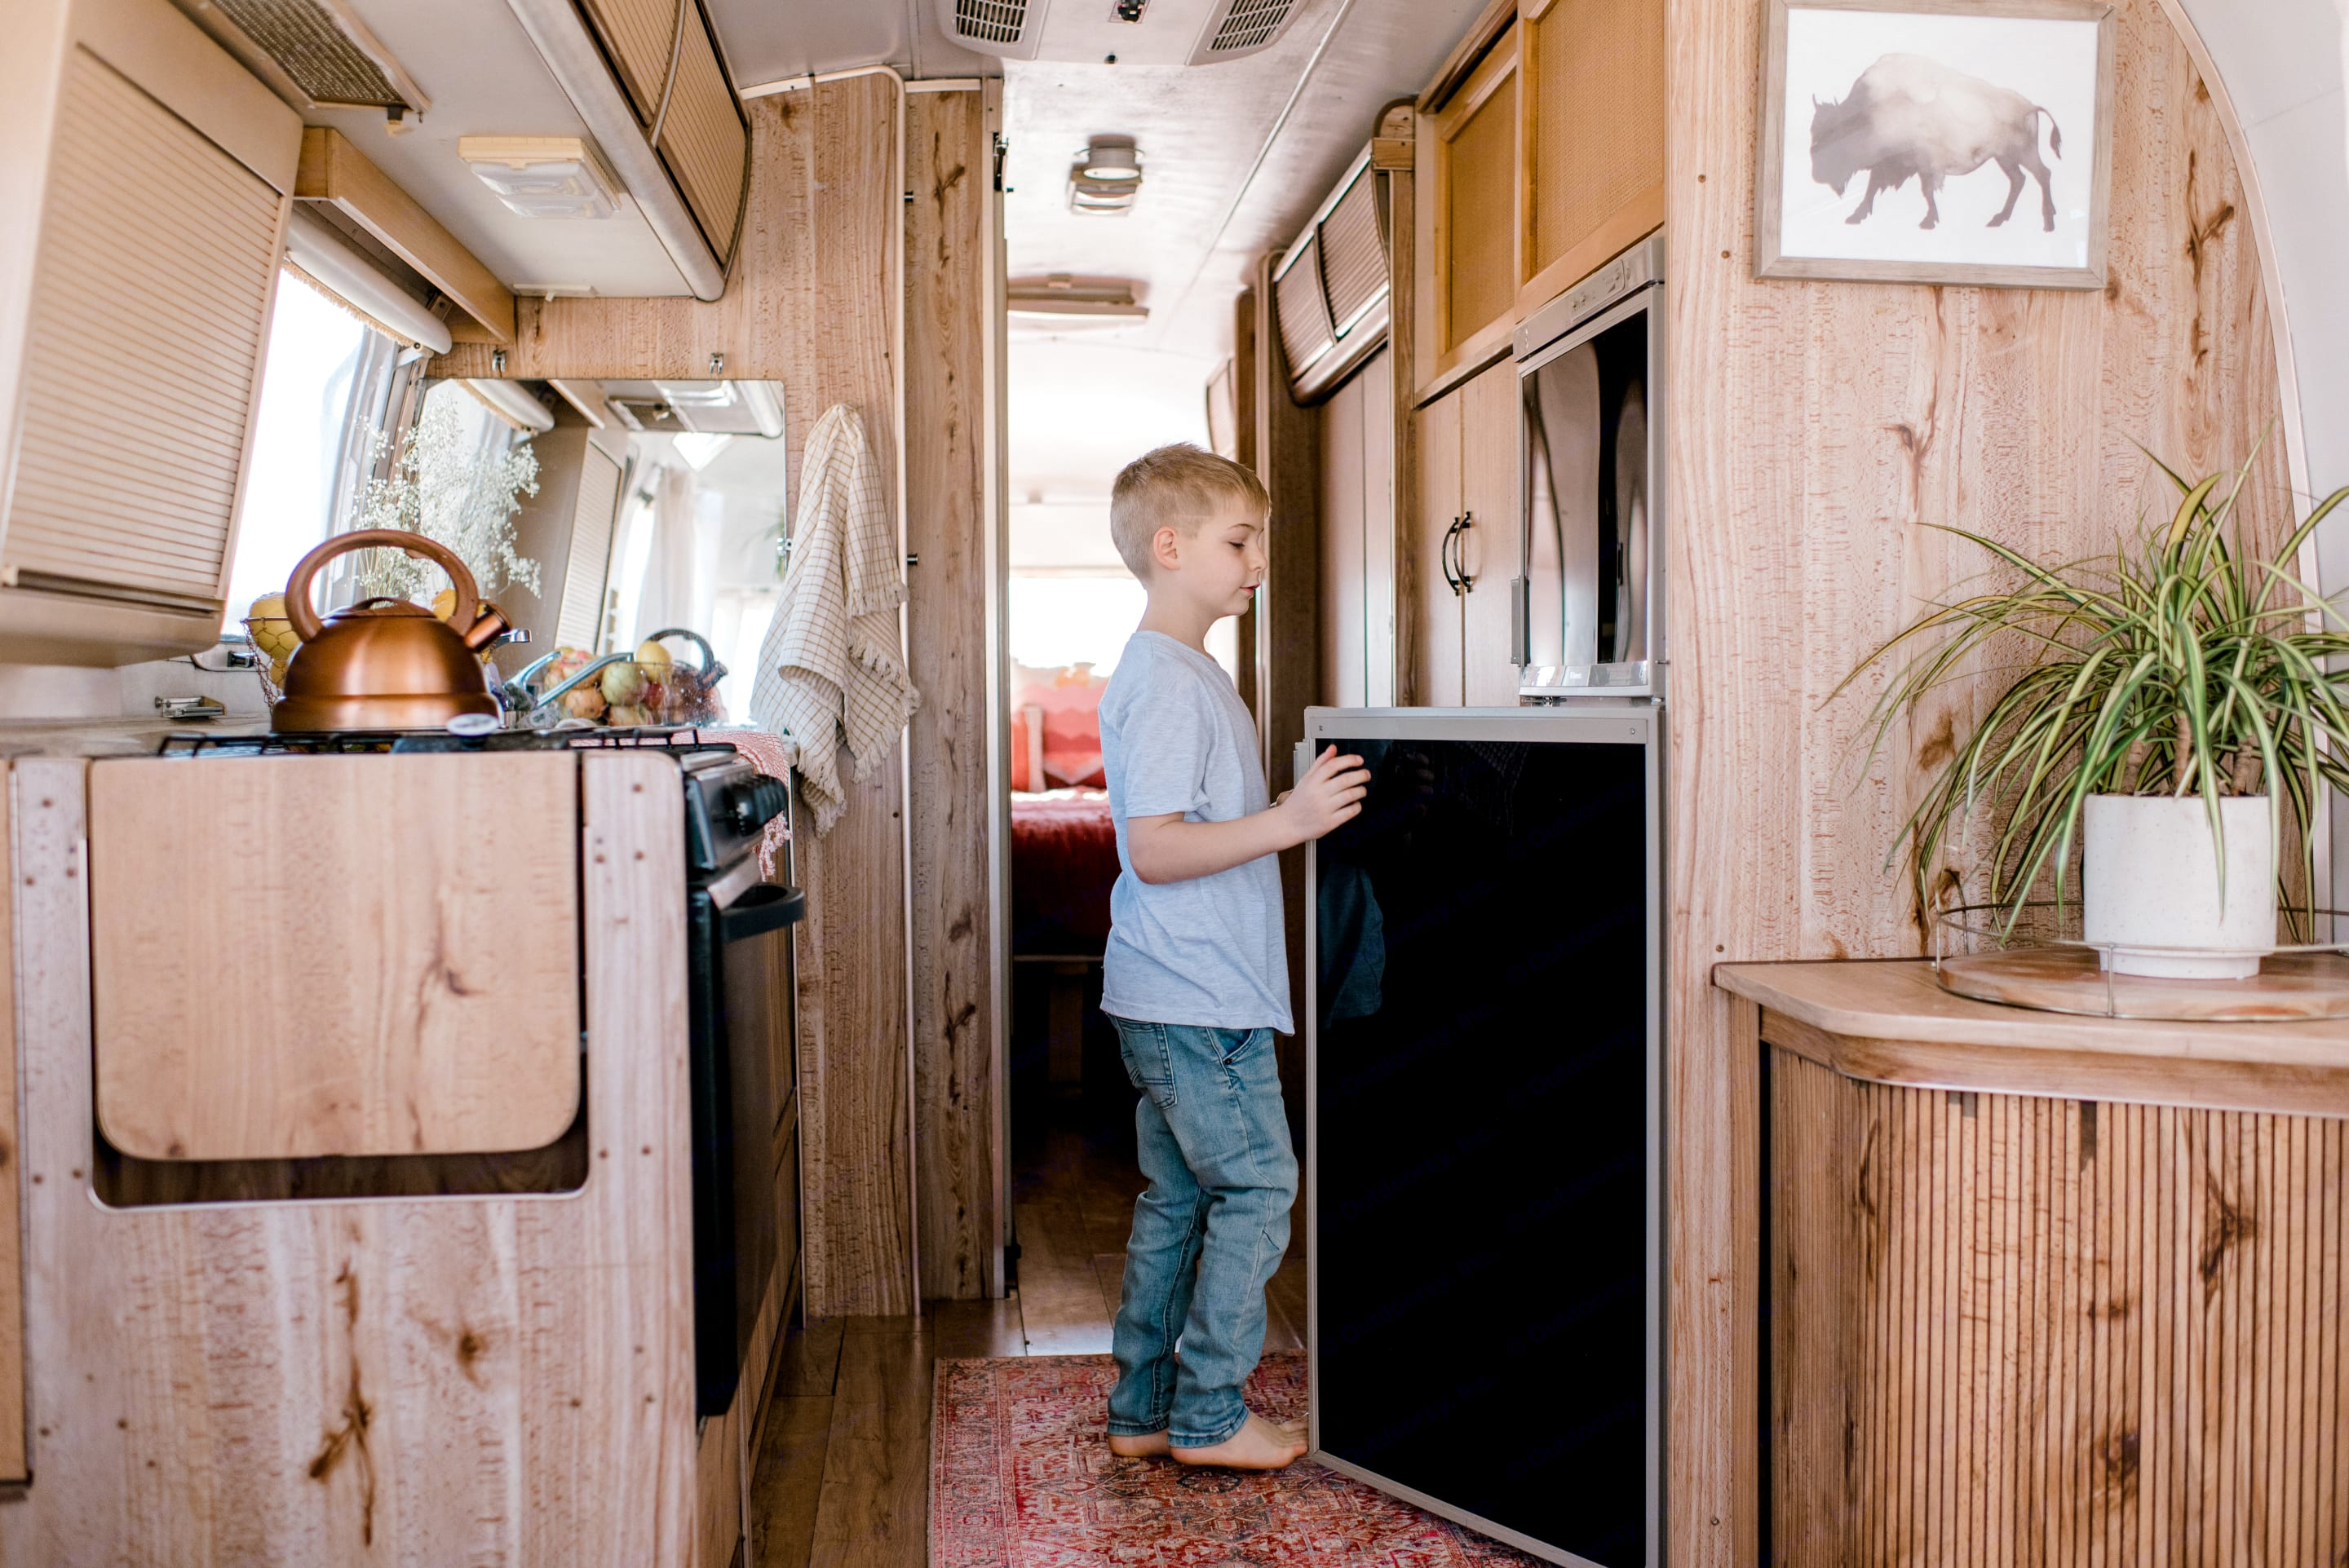 Camping is so much nicer with some modern amenities available! Carolina comes complete with a fridge, freezer, stove, oven, and kitchen sink.. Airstream Excella 1983